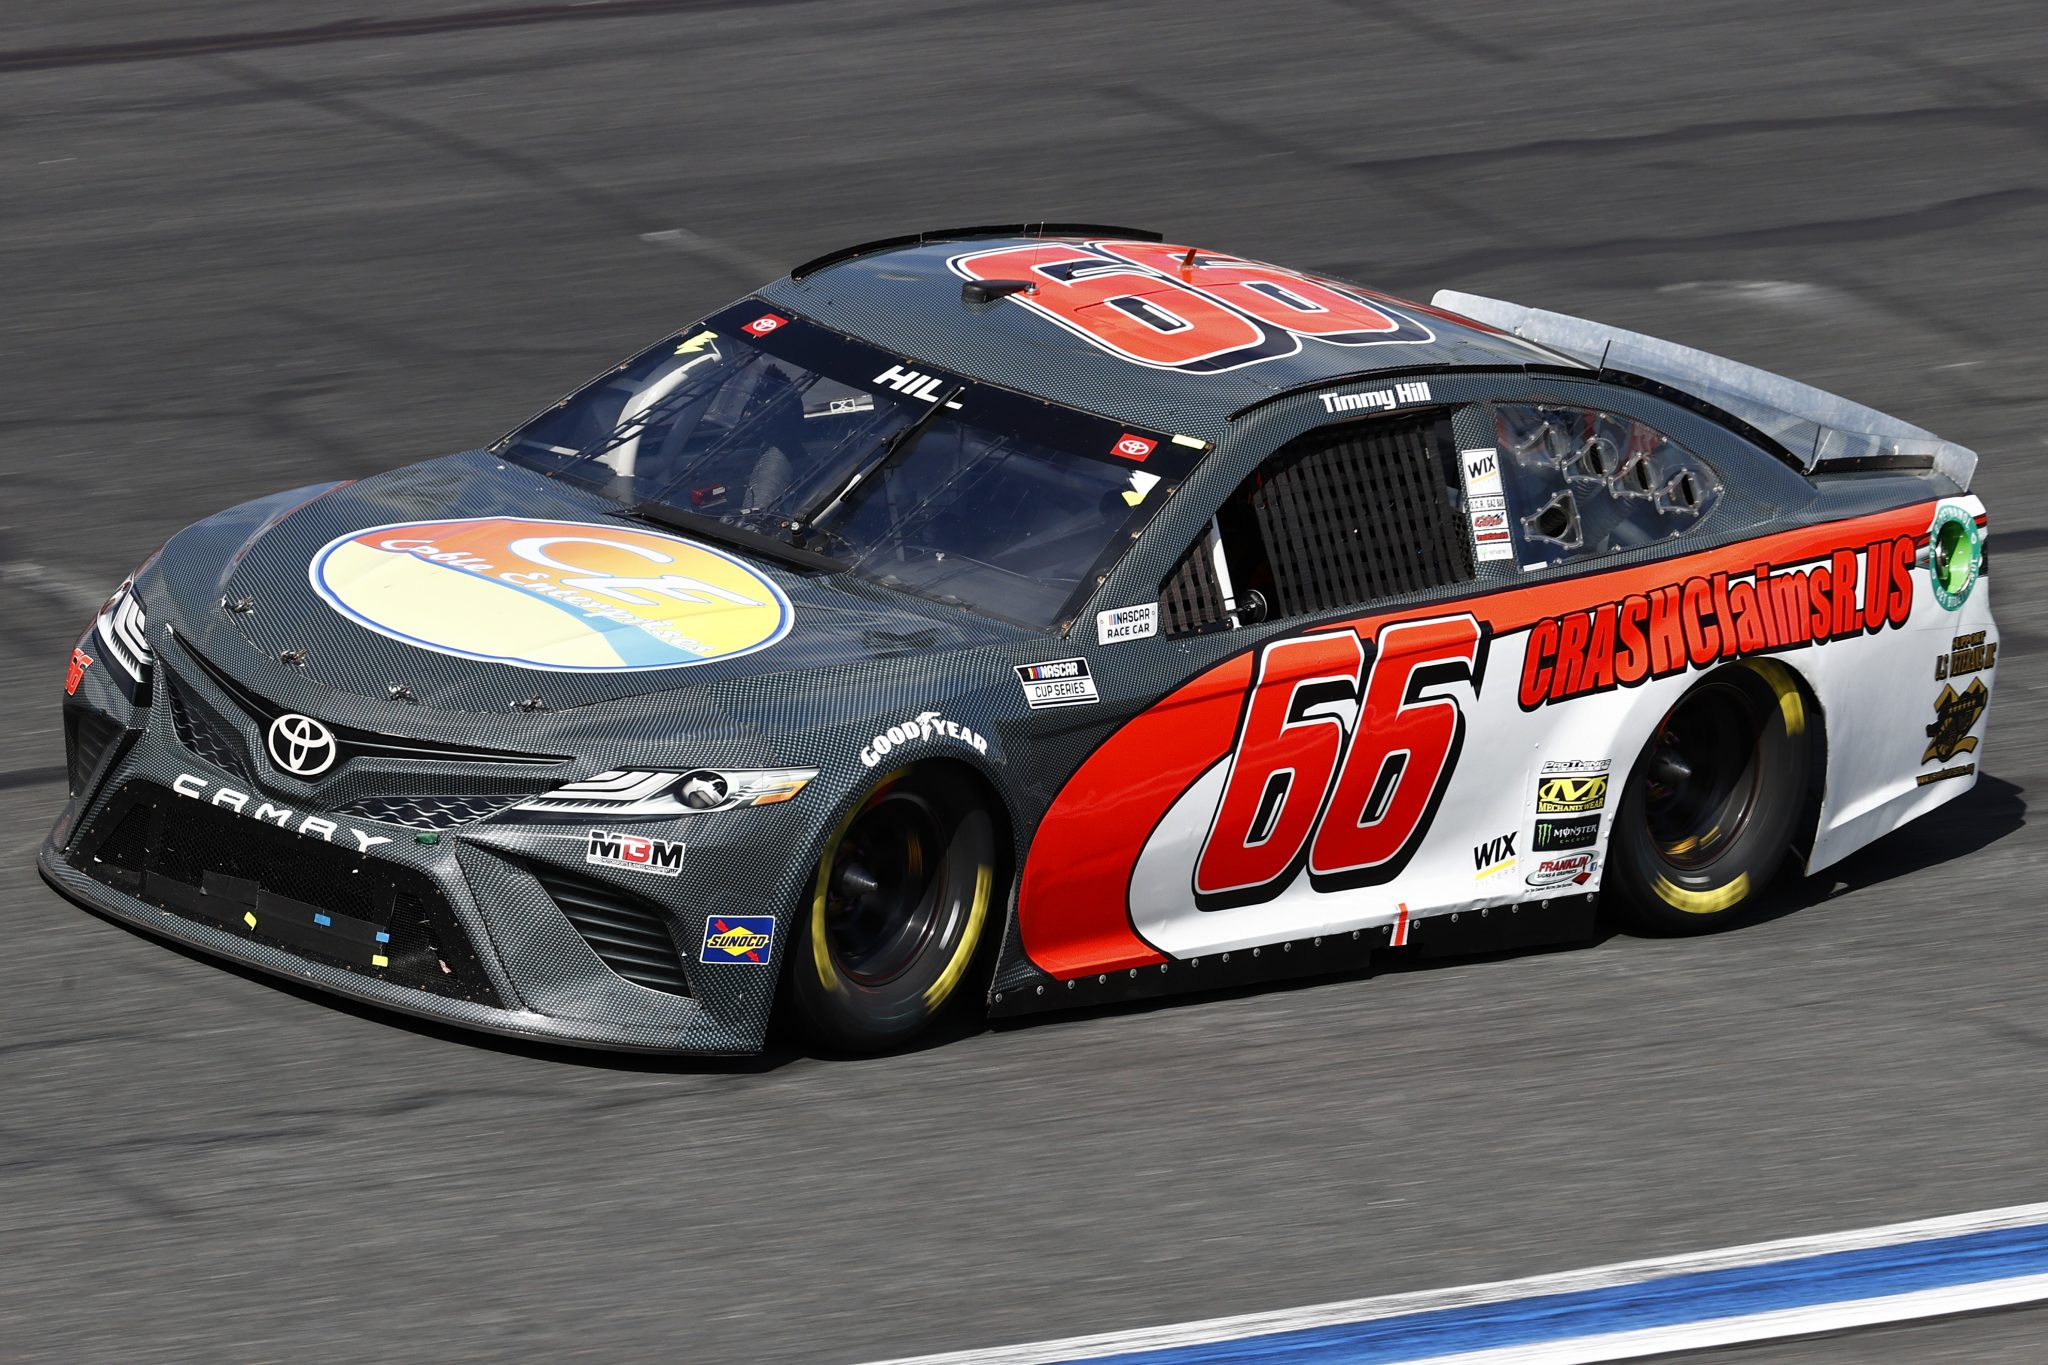 CONCORD, NORTH CAROLINA - OCTOBER 10: Timmy Hill, driver of the #66 Coble Enterprises Toyota, drives during the NASCAR Cup Series Bank of America ROVAL 400 at Charlotte Motor Speedway on October 10, 2021 in Concord, North Carolina. (Photo by Jared C. Tilton/Getty Images) | Getty Images